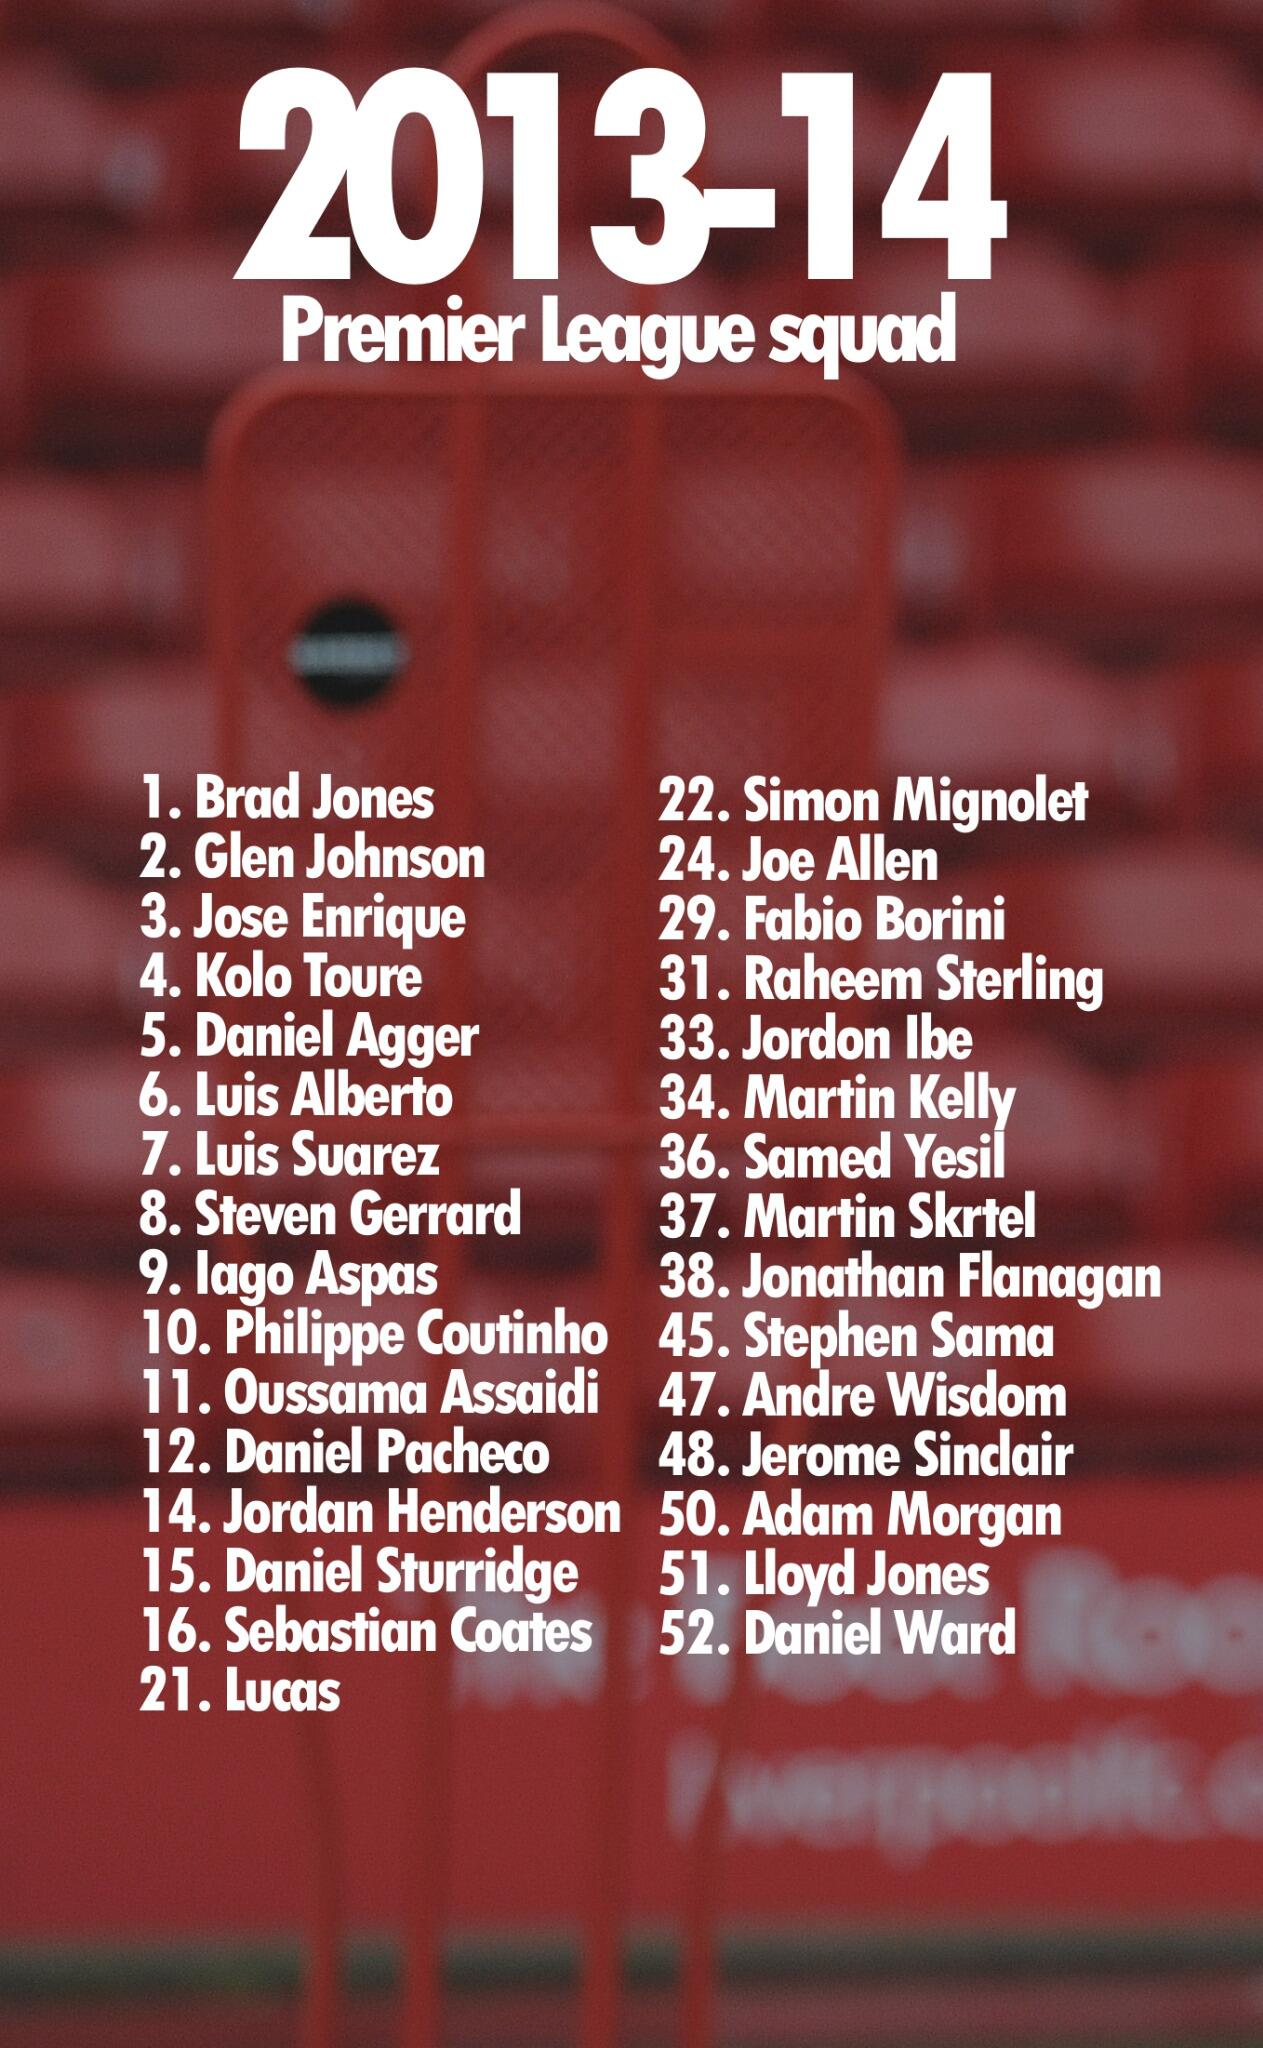 #LFC confirms @premierleague squad numbers for 2013-14: http://t.co/iMY1U8RCeD